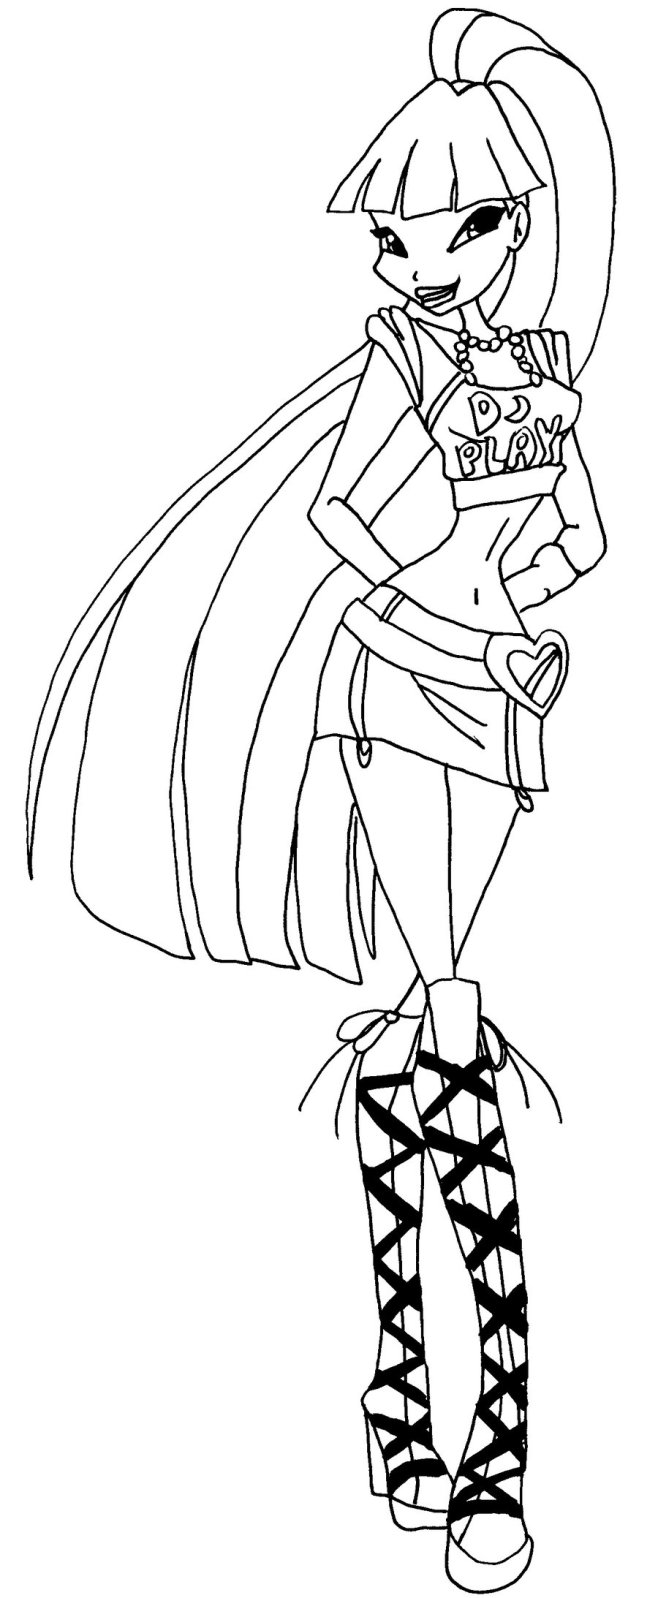 winx club musa musa winx coloring pages download and print for free musa club winx